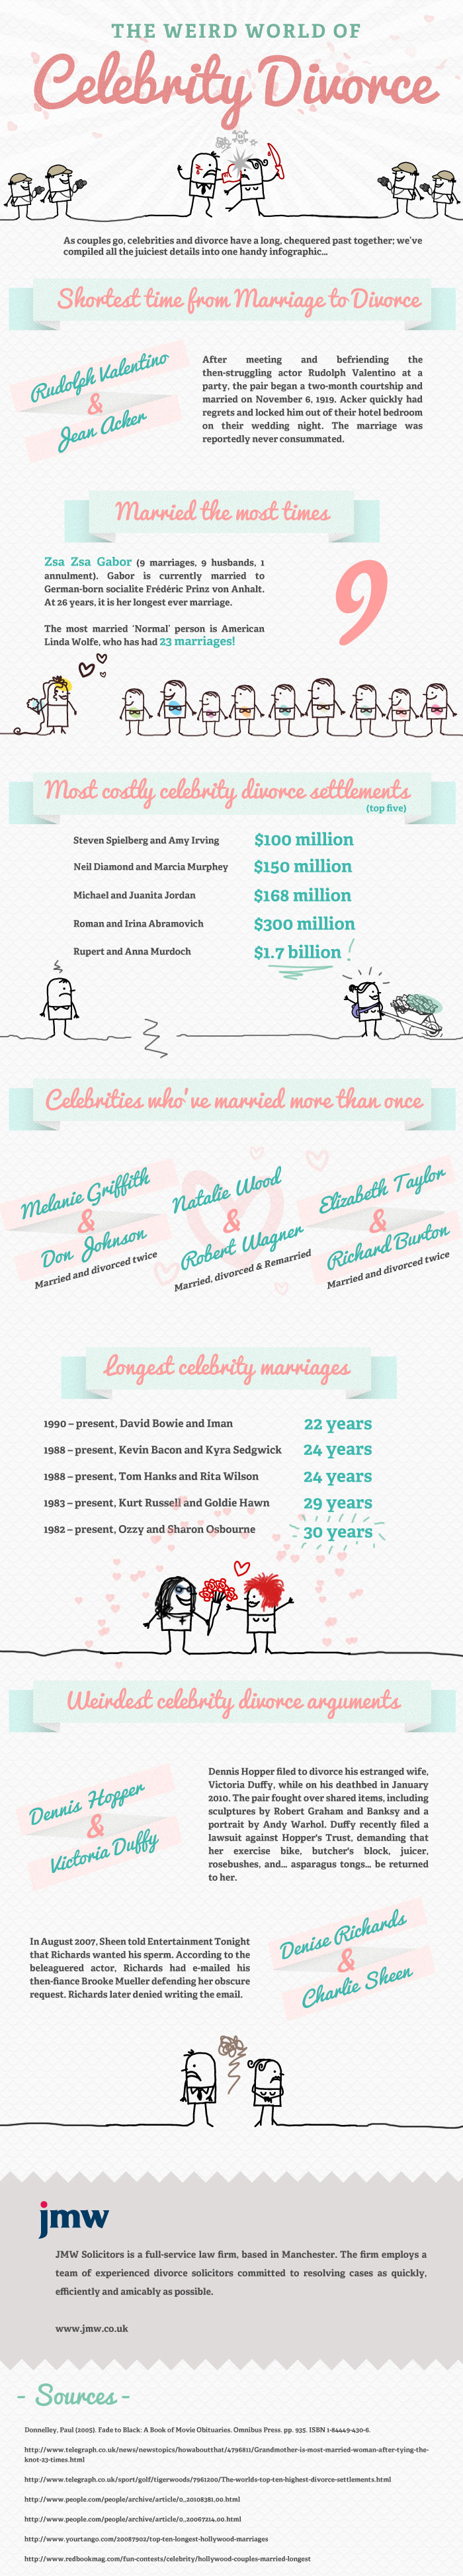 Divorce of celebrities